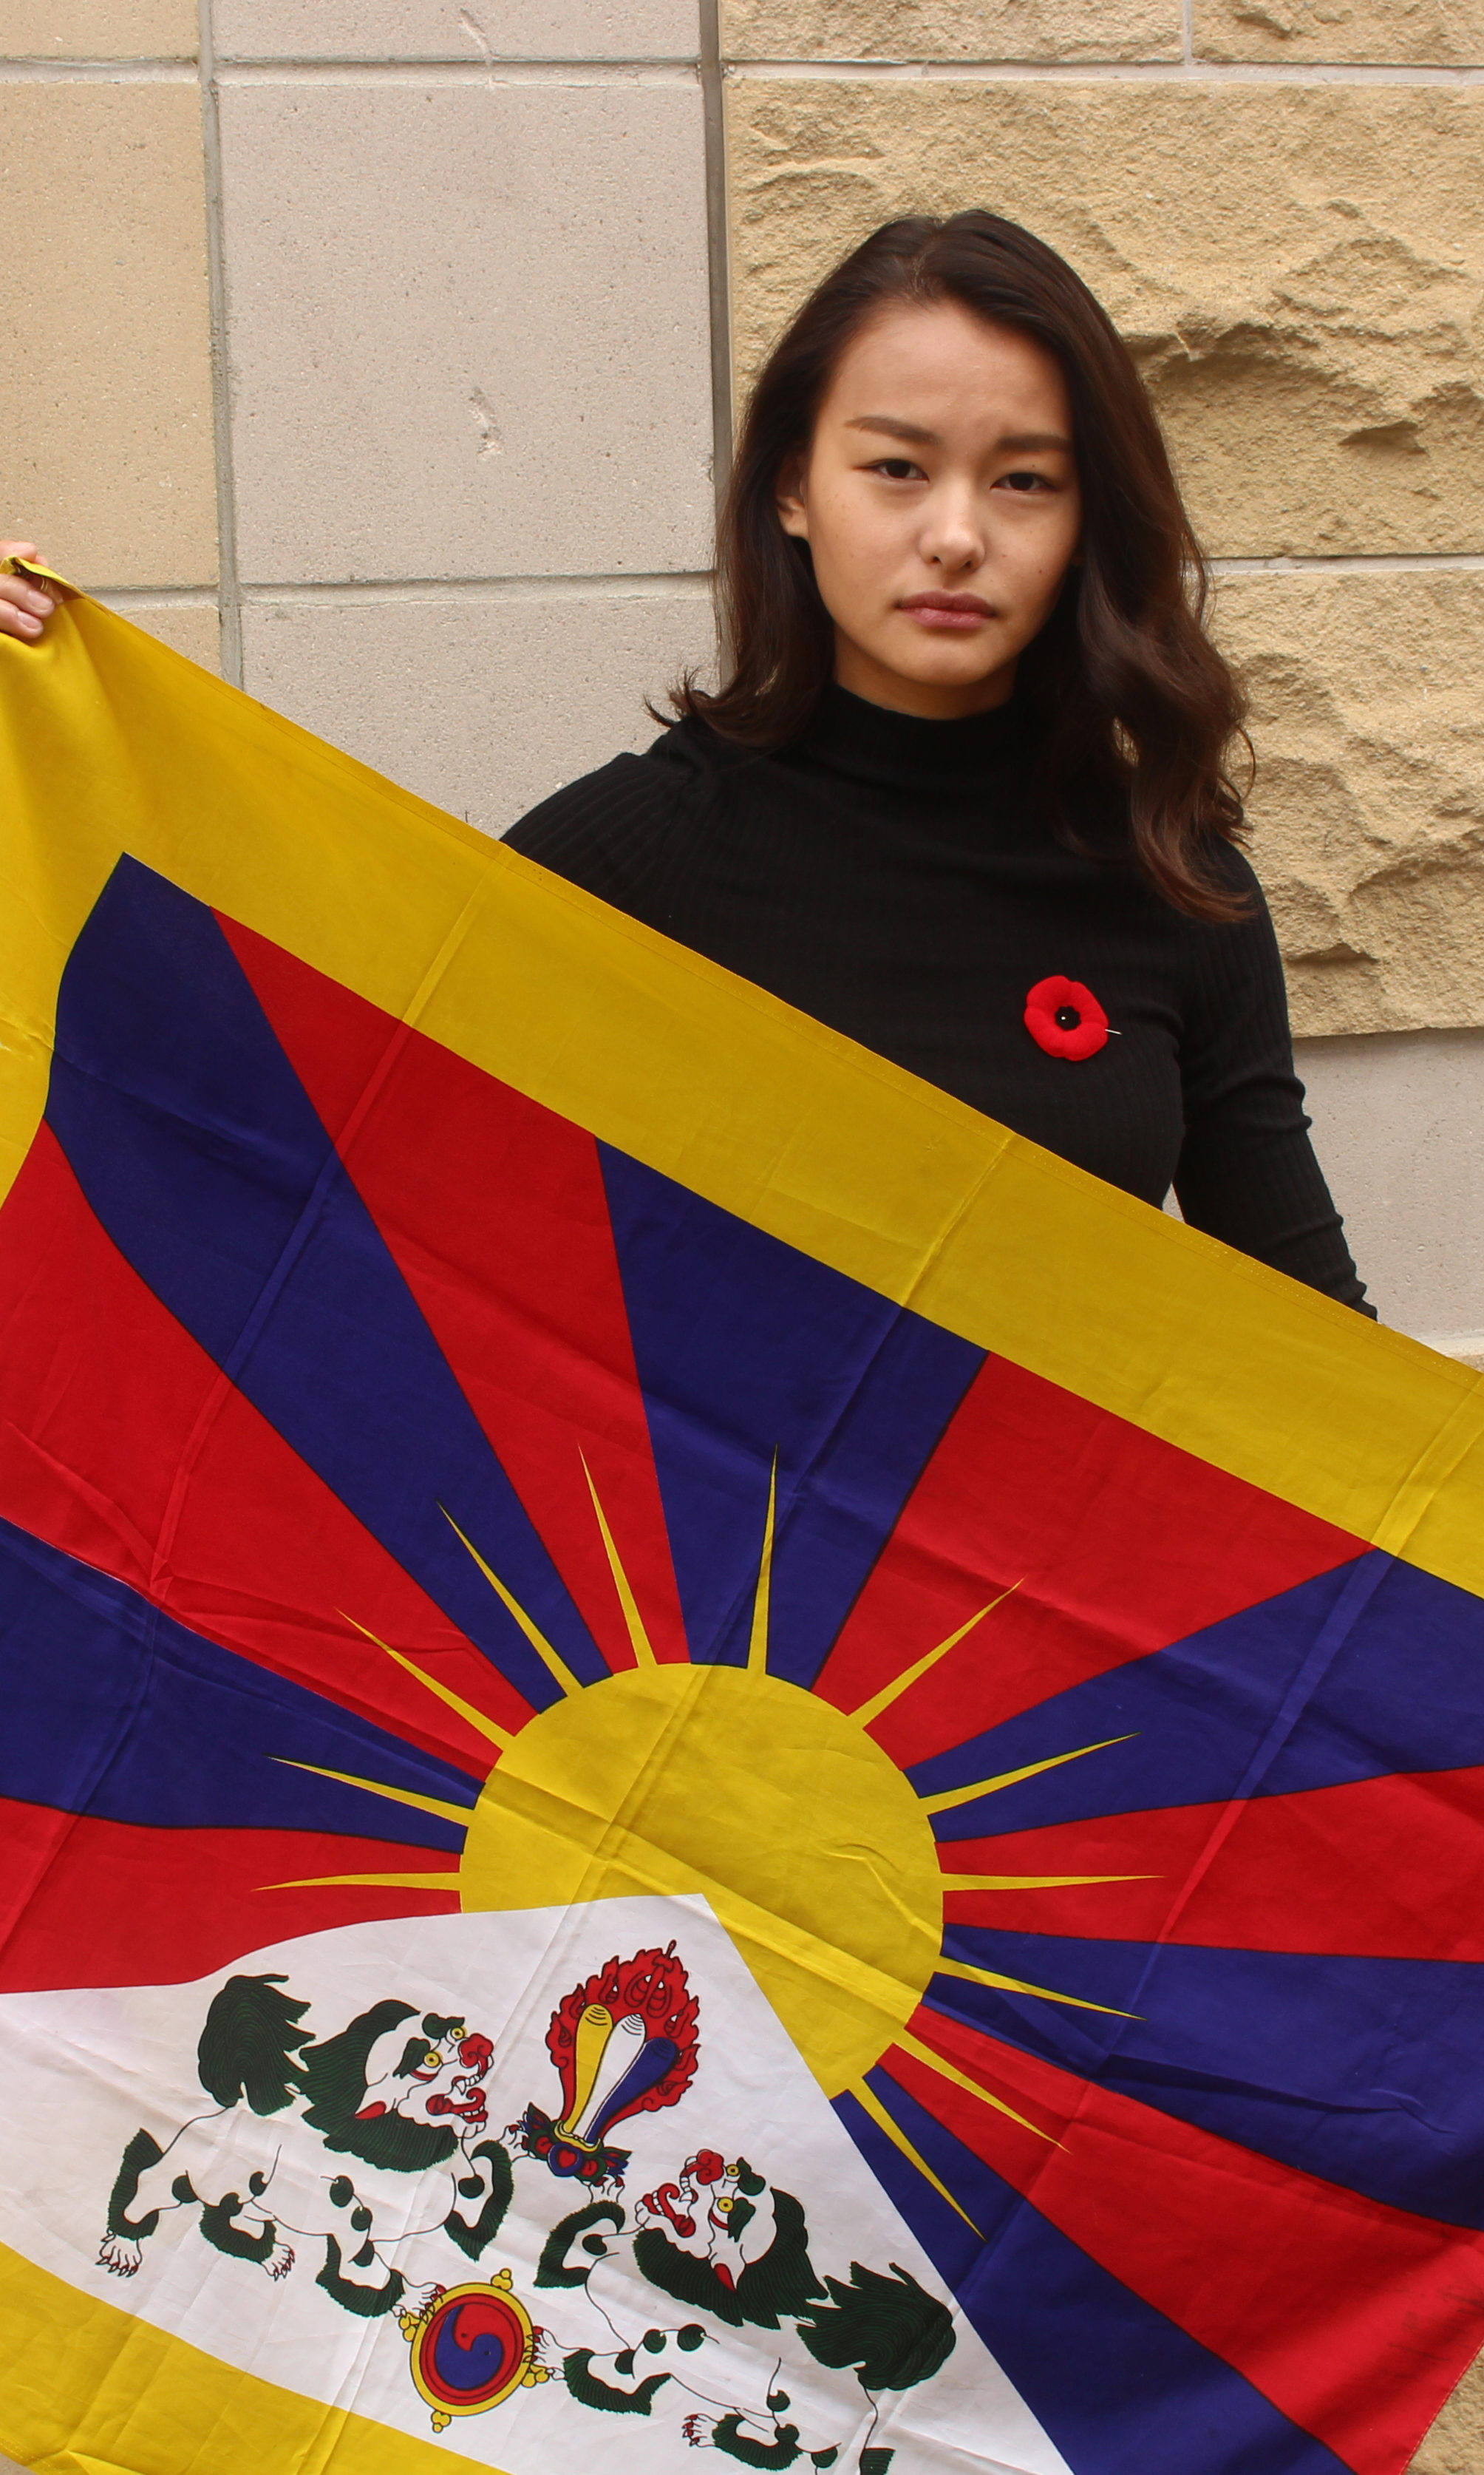 Remembrance Day through the eyes of a Tibetan